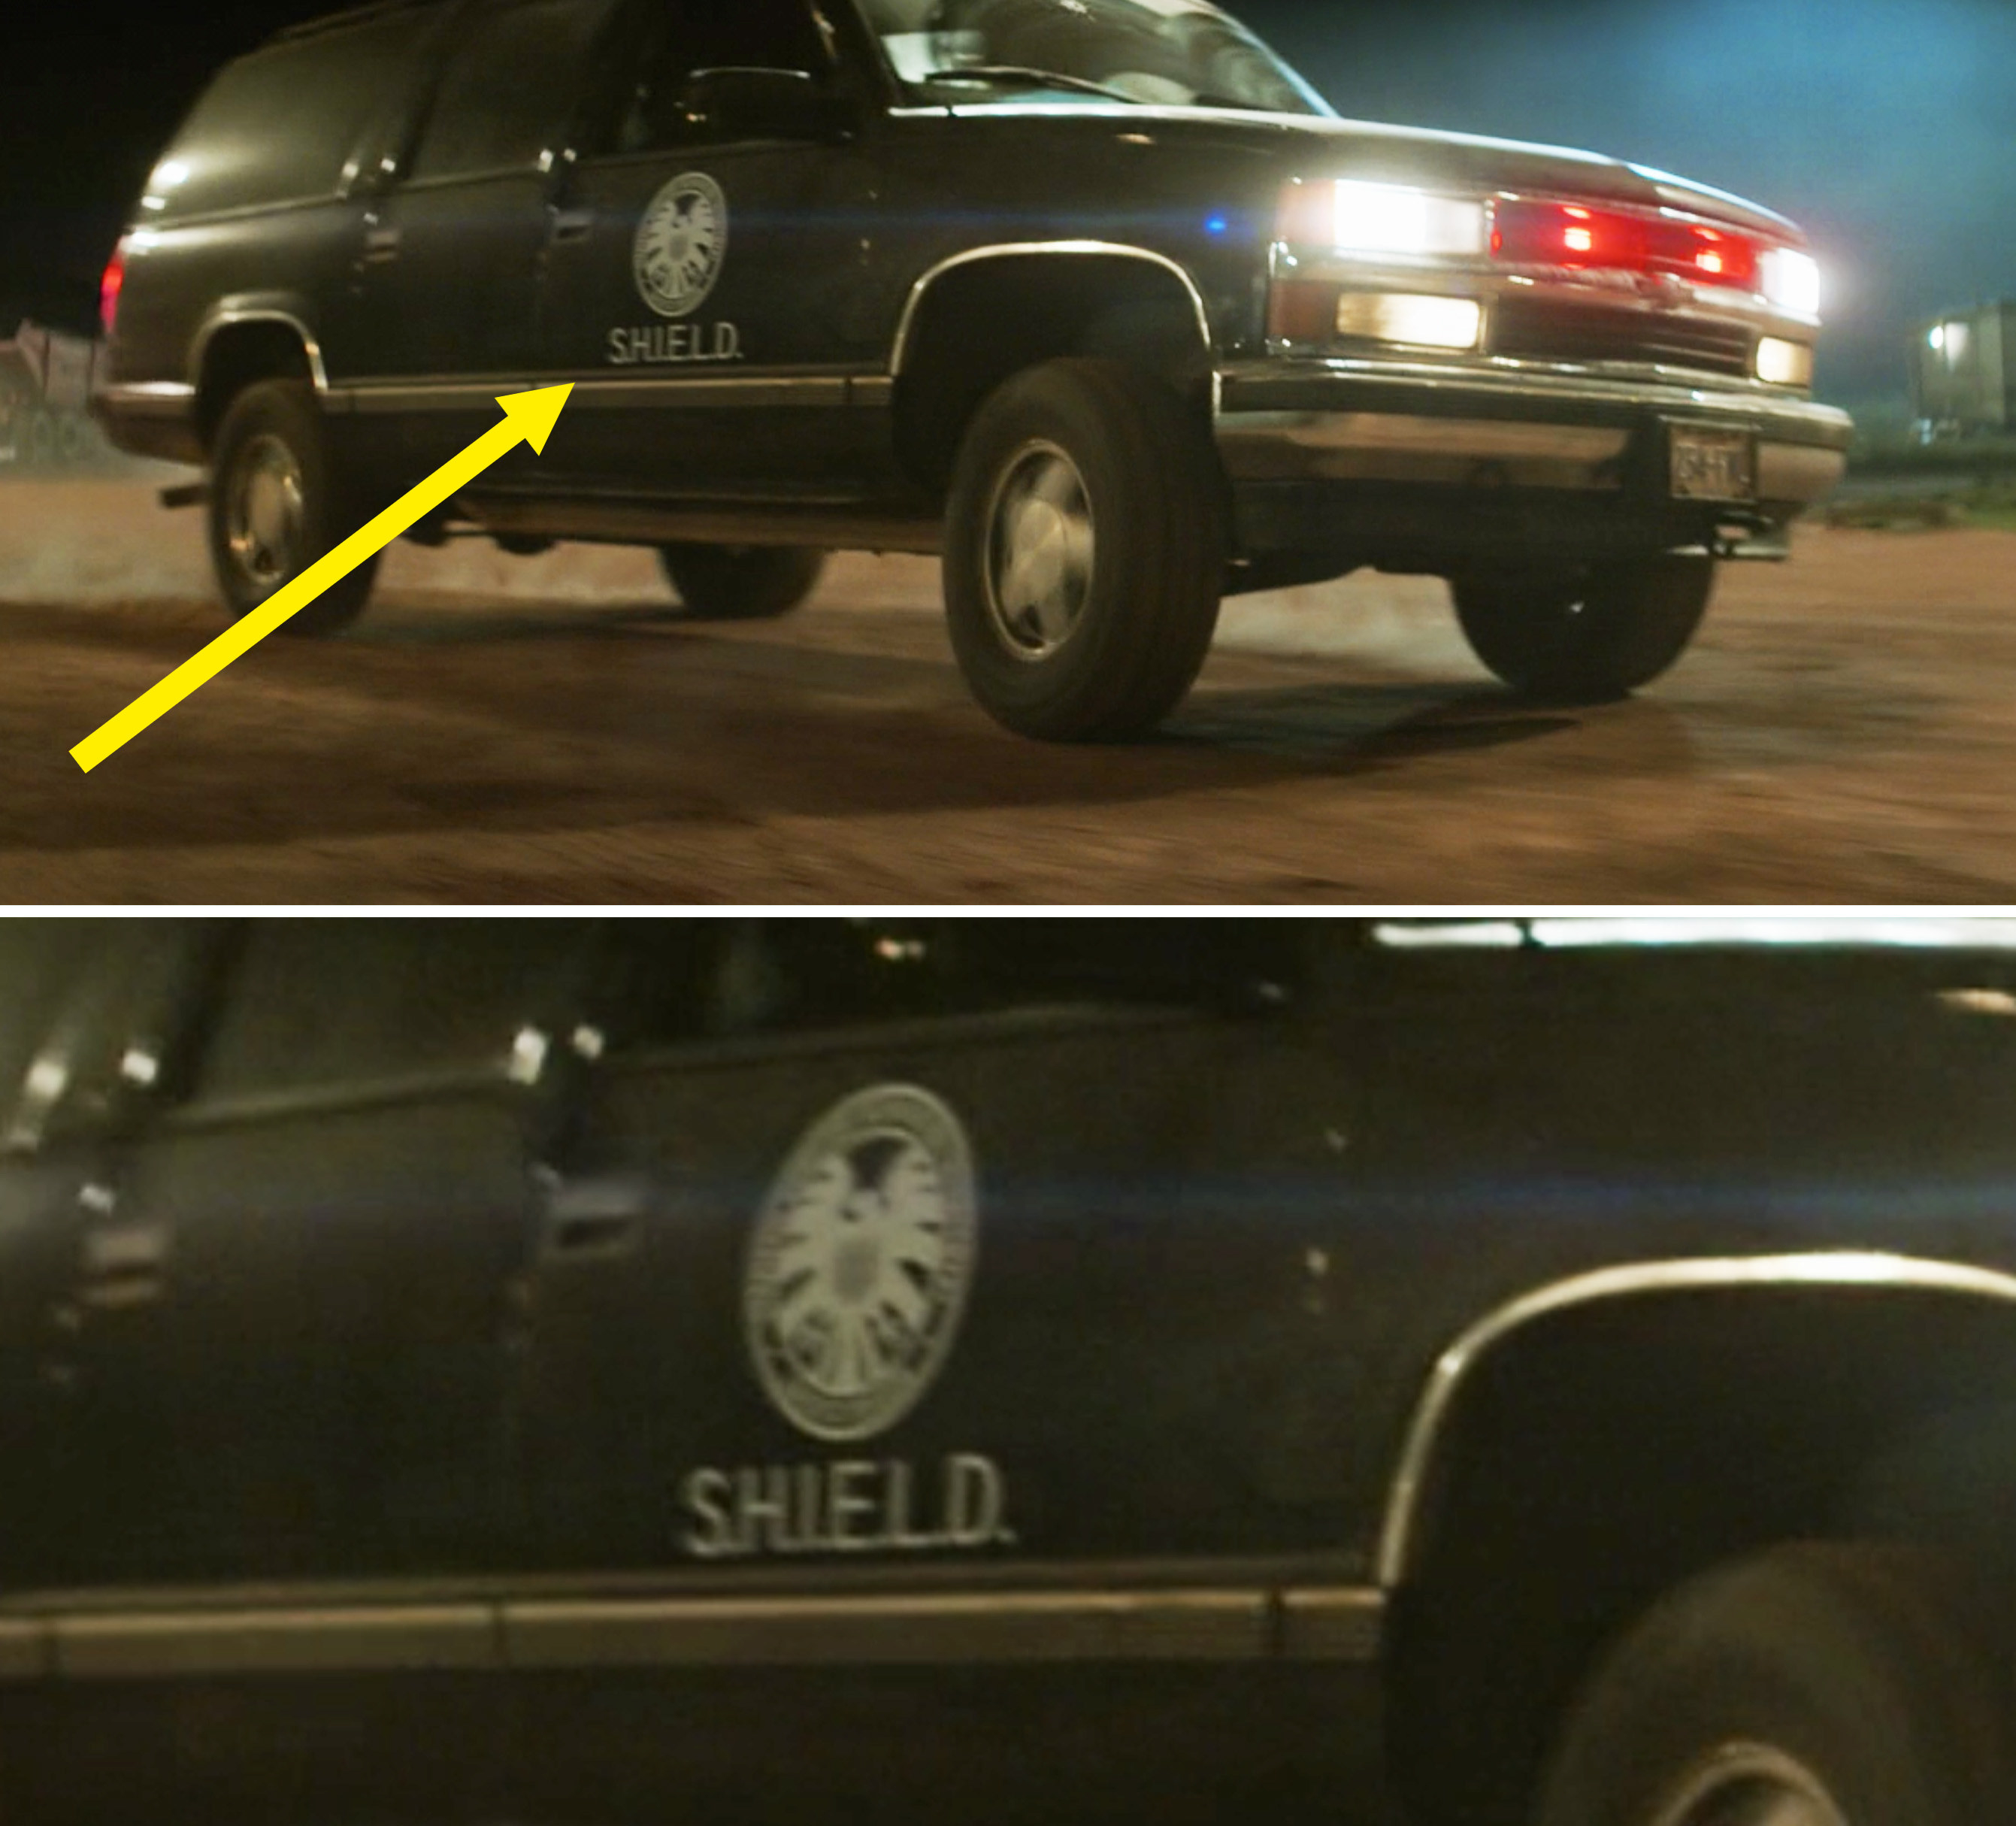 A close-up of a SHIELD logo on a car